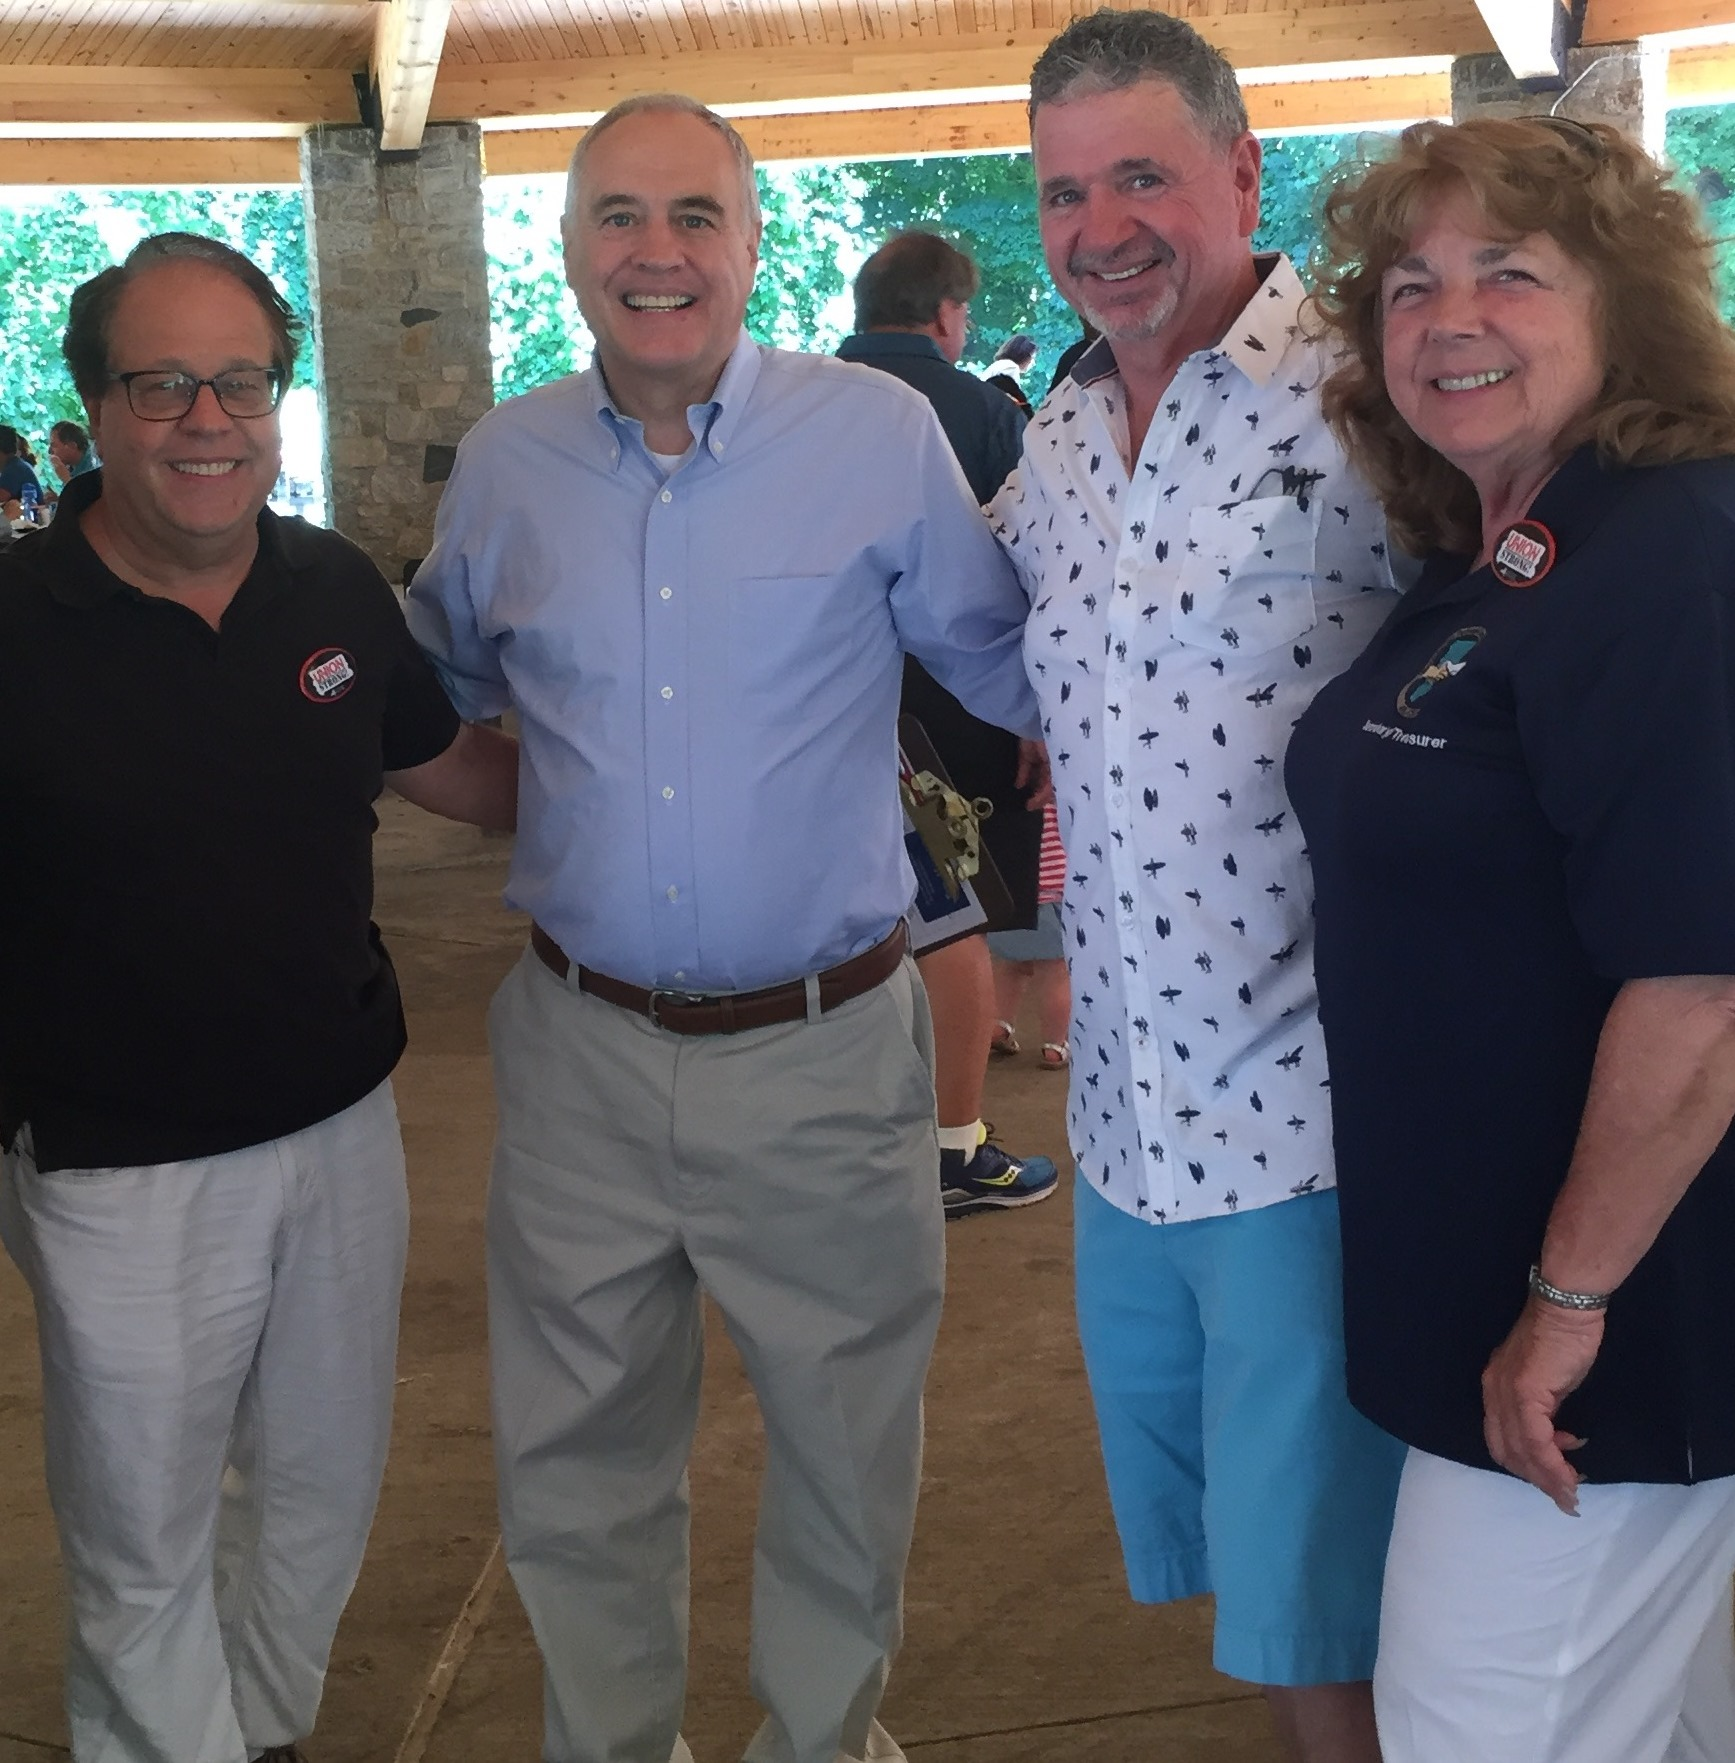 Assemblyman Abinanti at a Labor Picnic at Secor Woods Park with State Comptroller Tom DiNapoli and labor leaders.